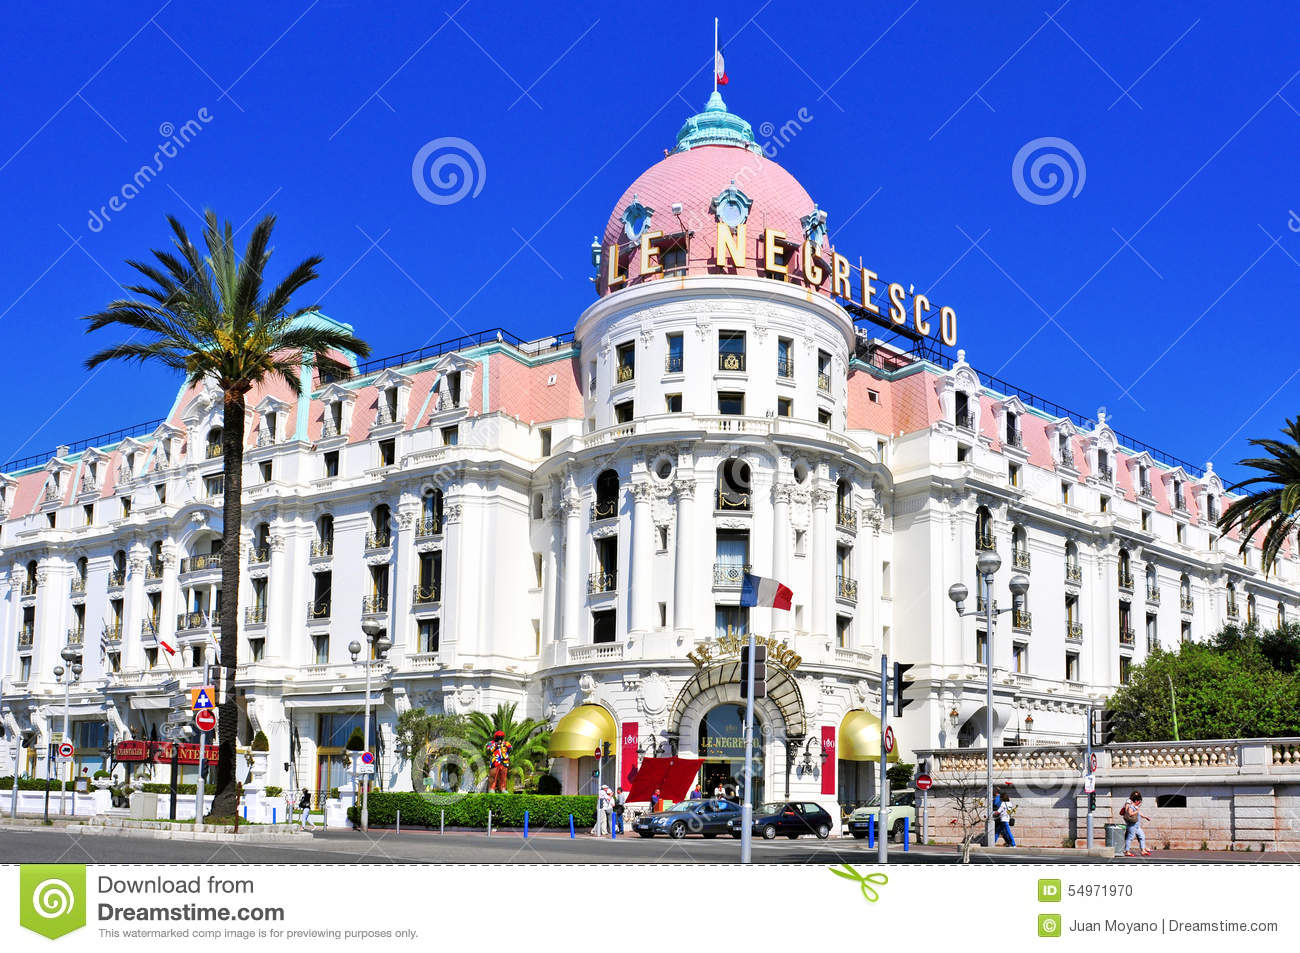 Le negresco hotel in nice france editorial image image for Hotels unis de france